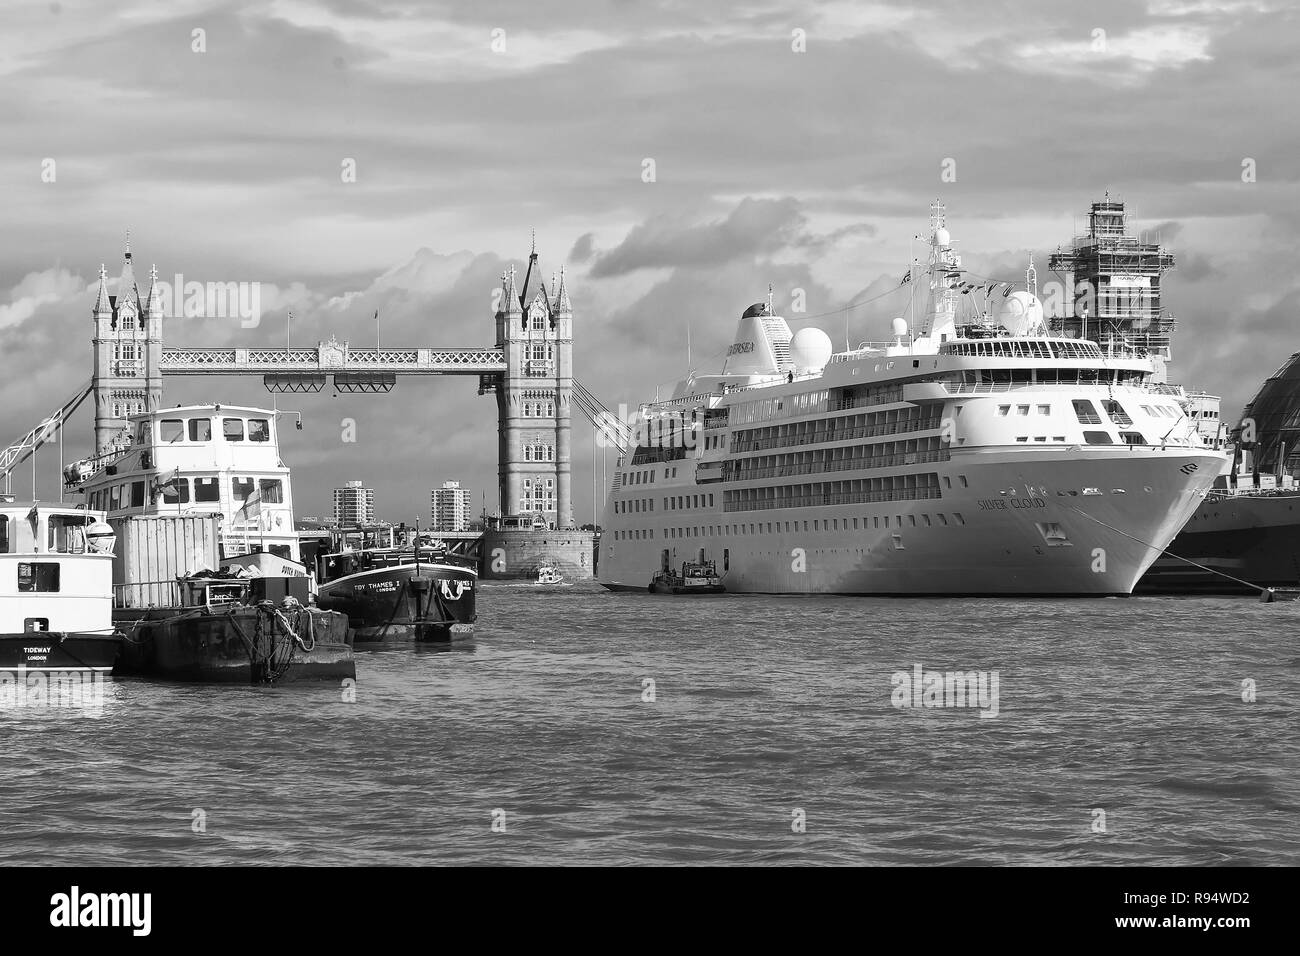 London, United Kingdom - February 25, 2010: ships on Thames river. Tower bridge on cloudy sky with nice architecture. Travelling by water. Wanderlust and adventure on summer vacation. - Stock Image